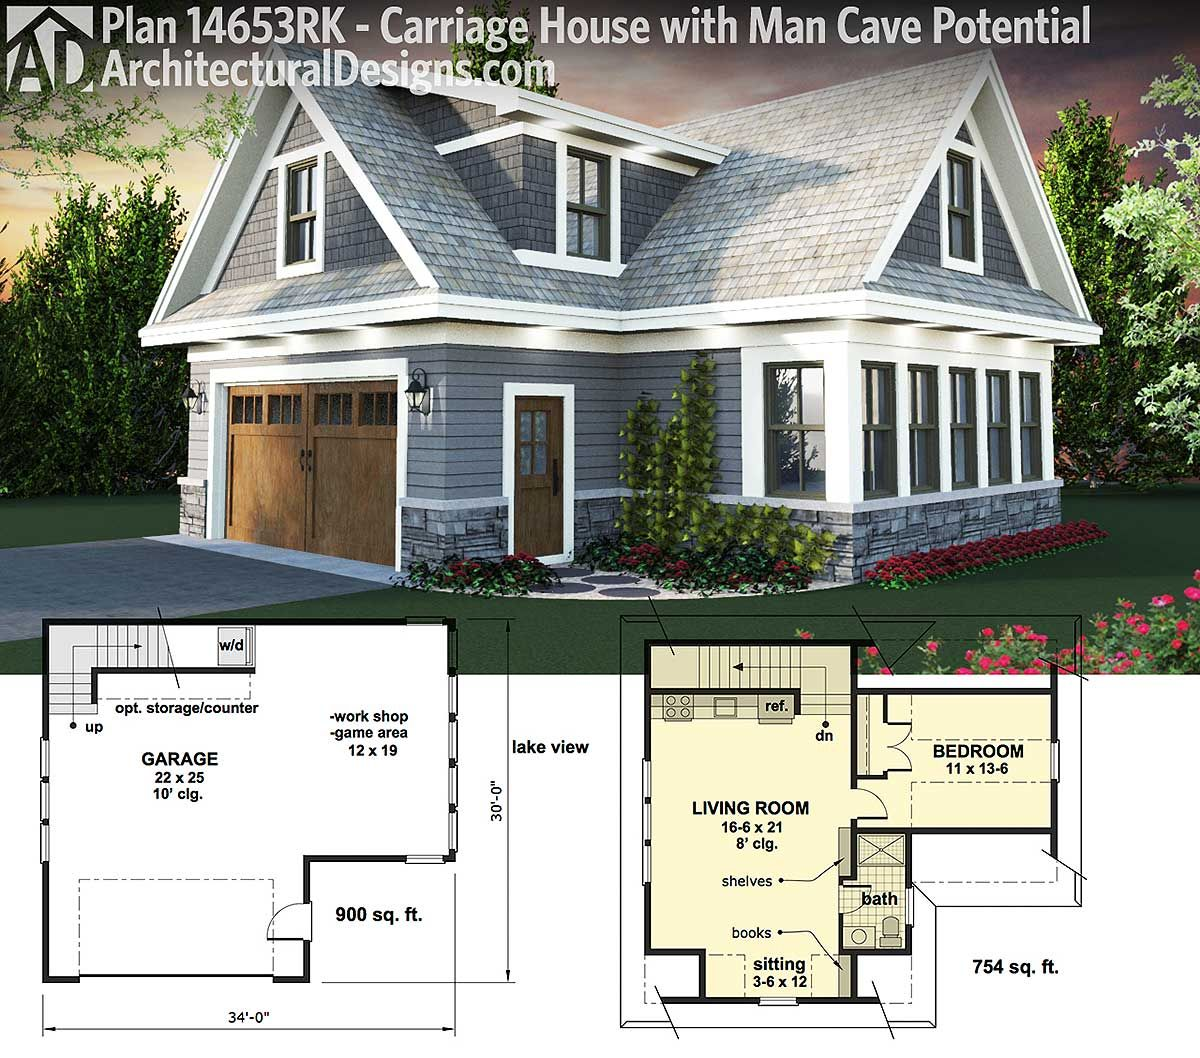 Plan 14653rk carriage house plan with man cave potential for Carriage house floor plans